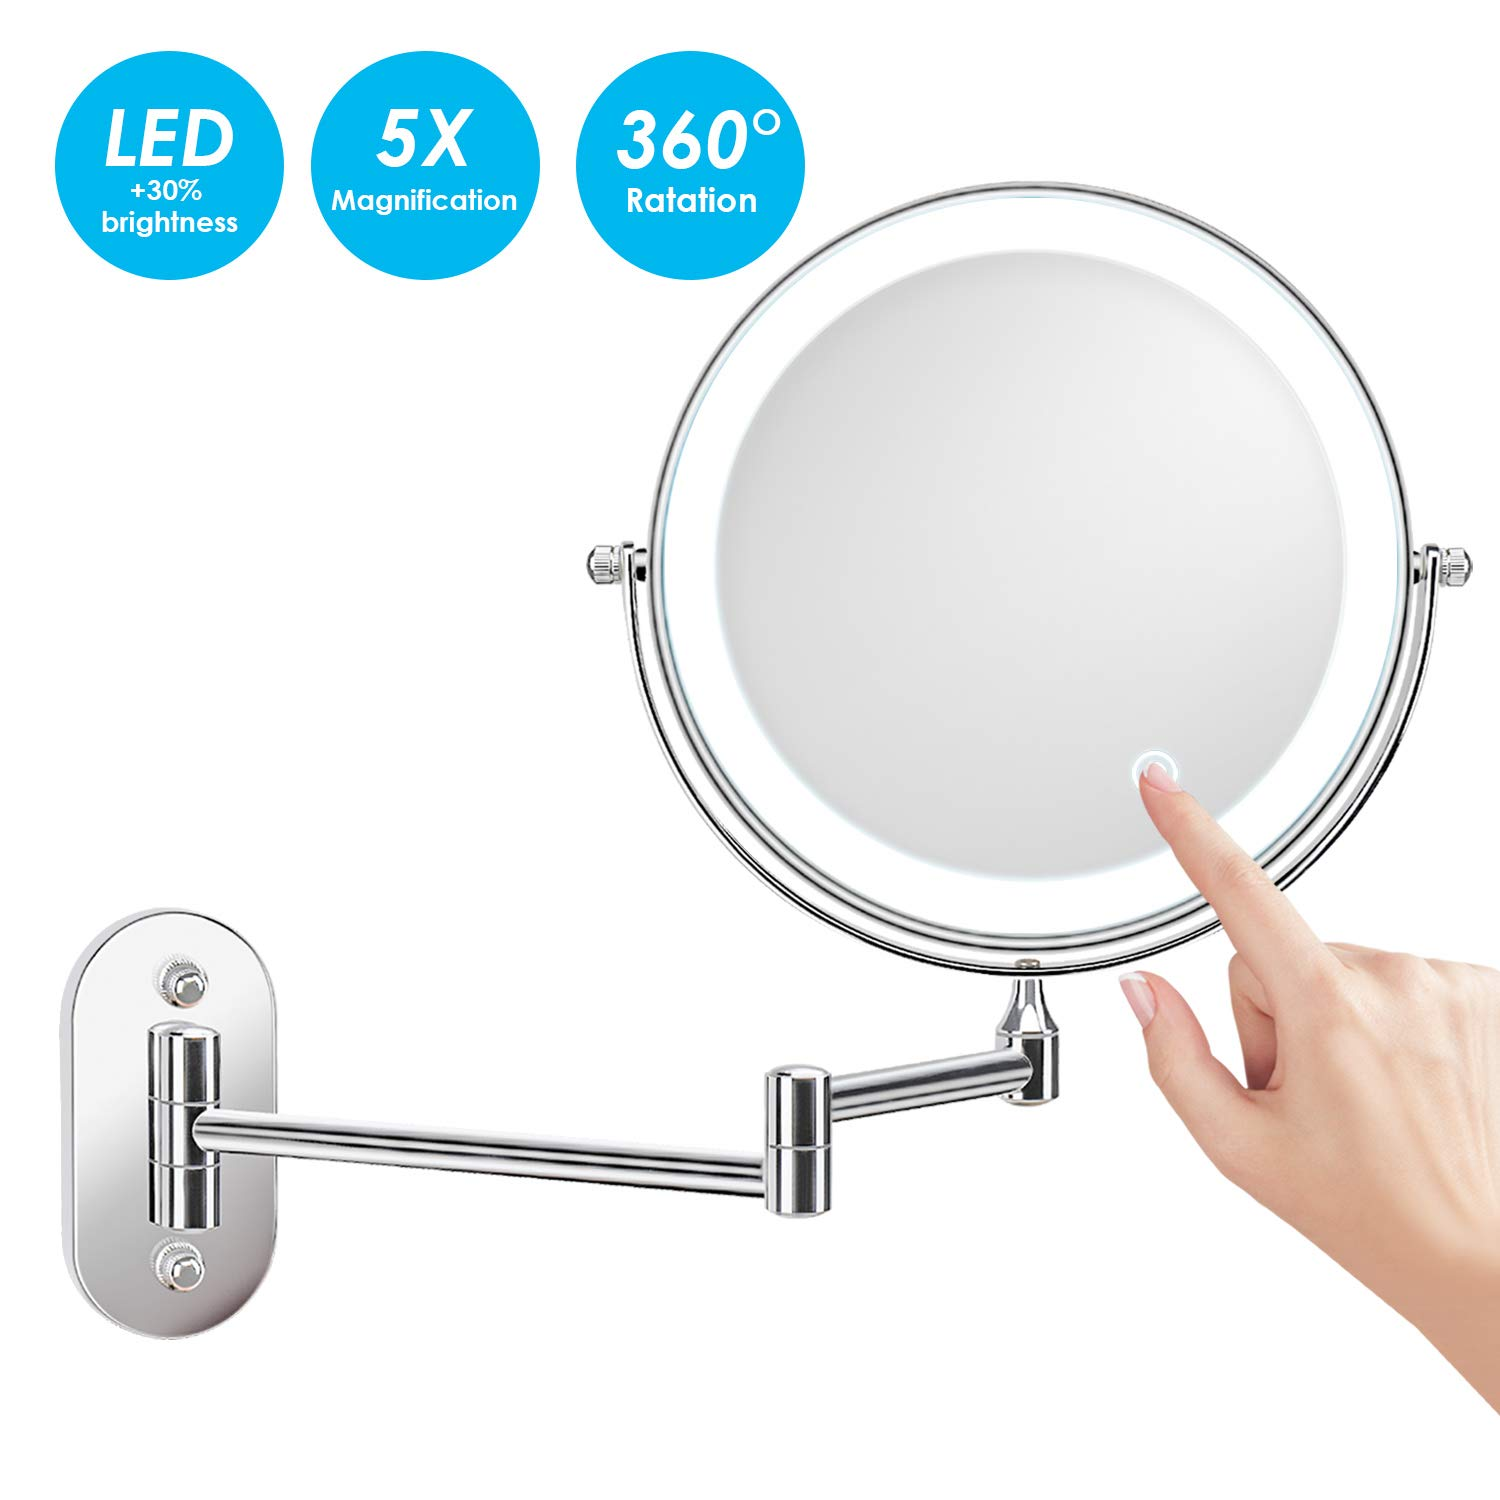 alvorog Wall Mounted Makeup Mirror 8 inches LED Touch Screen Adjustable Light Double Sided 1X 5X Magnifying Vanity Mirror Swivel Extendable for Bathroom Hotels Powered by Batteries Not Included